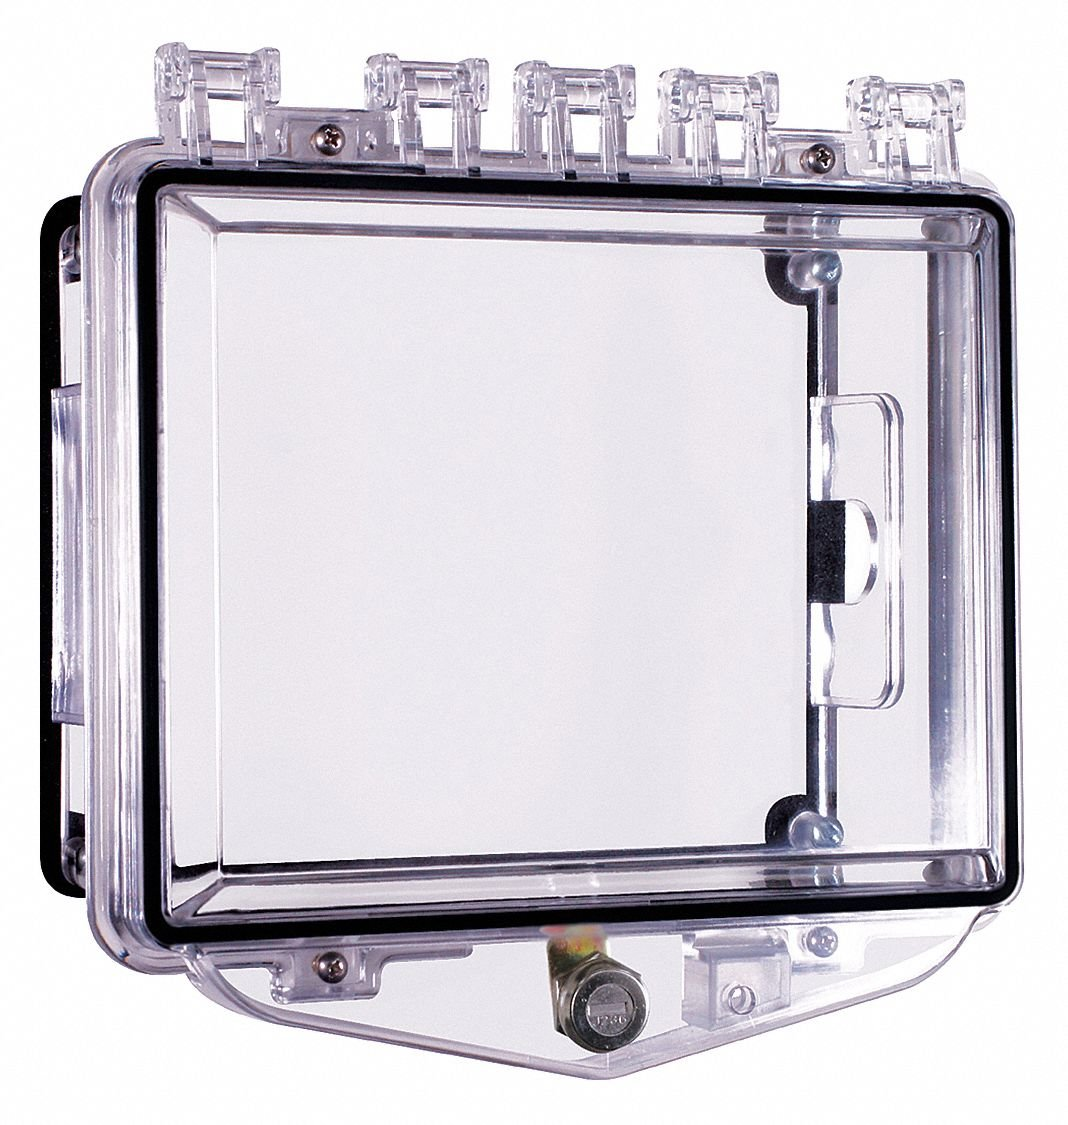 Enclosure,Open,Clear,Surface,Key Lock